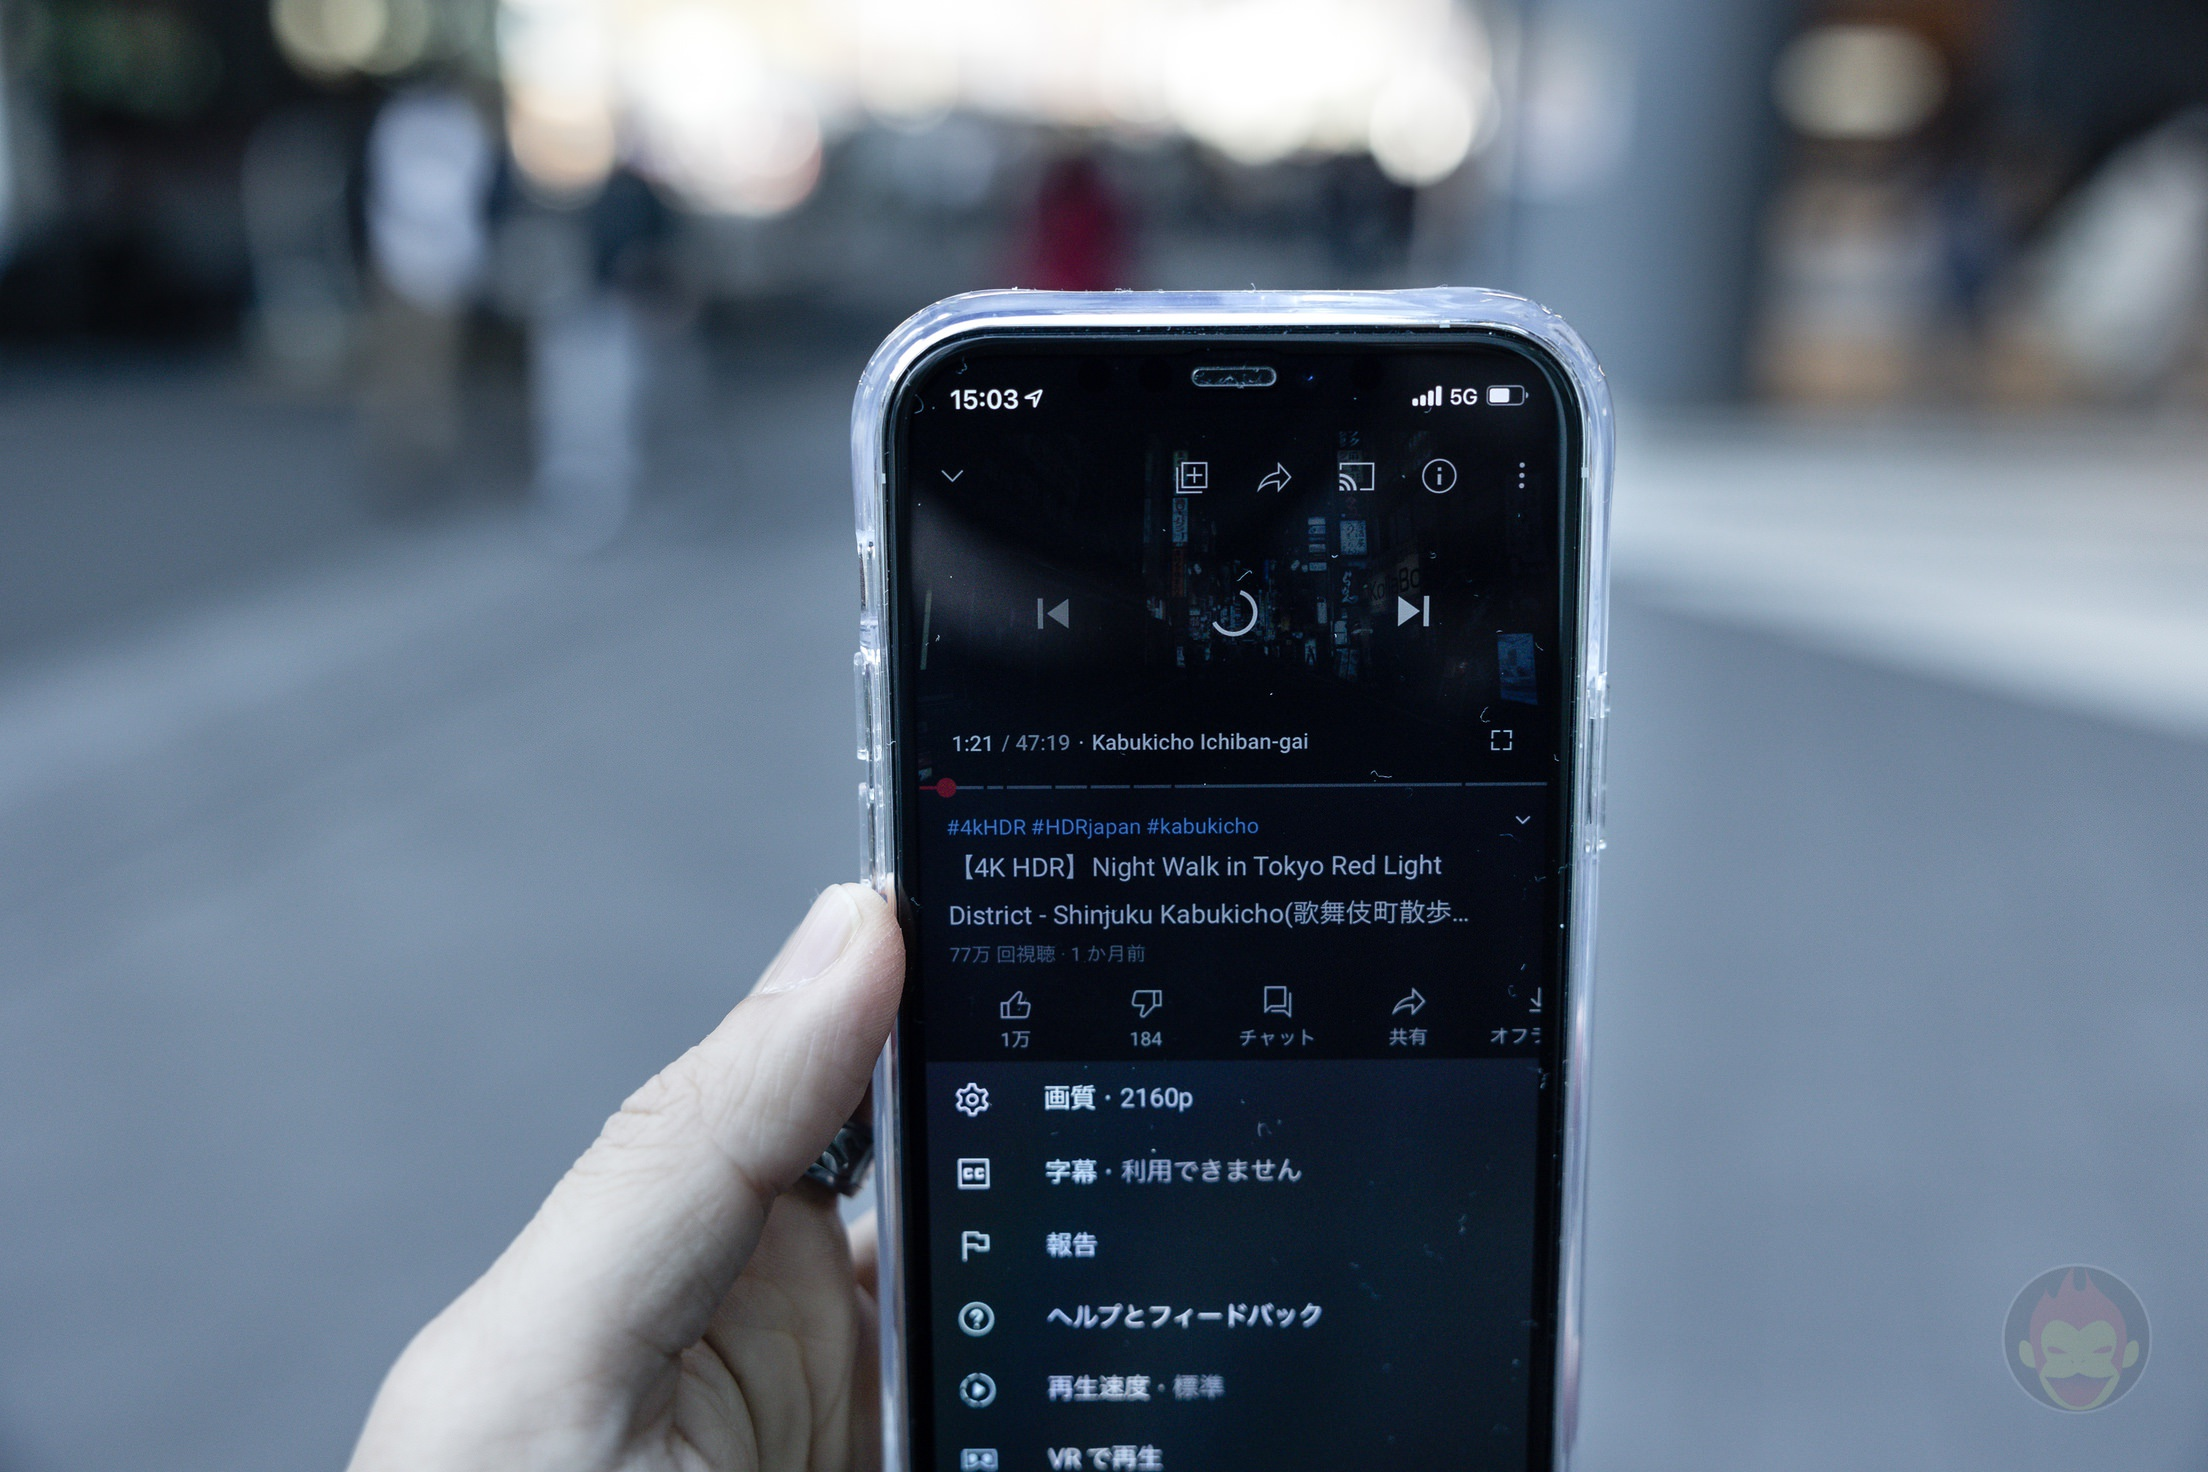 Using-5G-Networks-in-Japan-around-Shibuya-with-iPhone12Pro-03.jpg